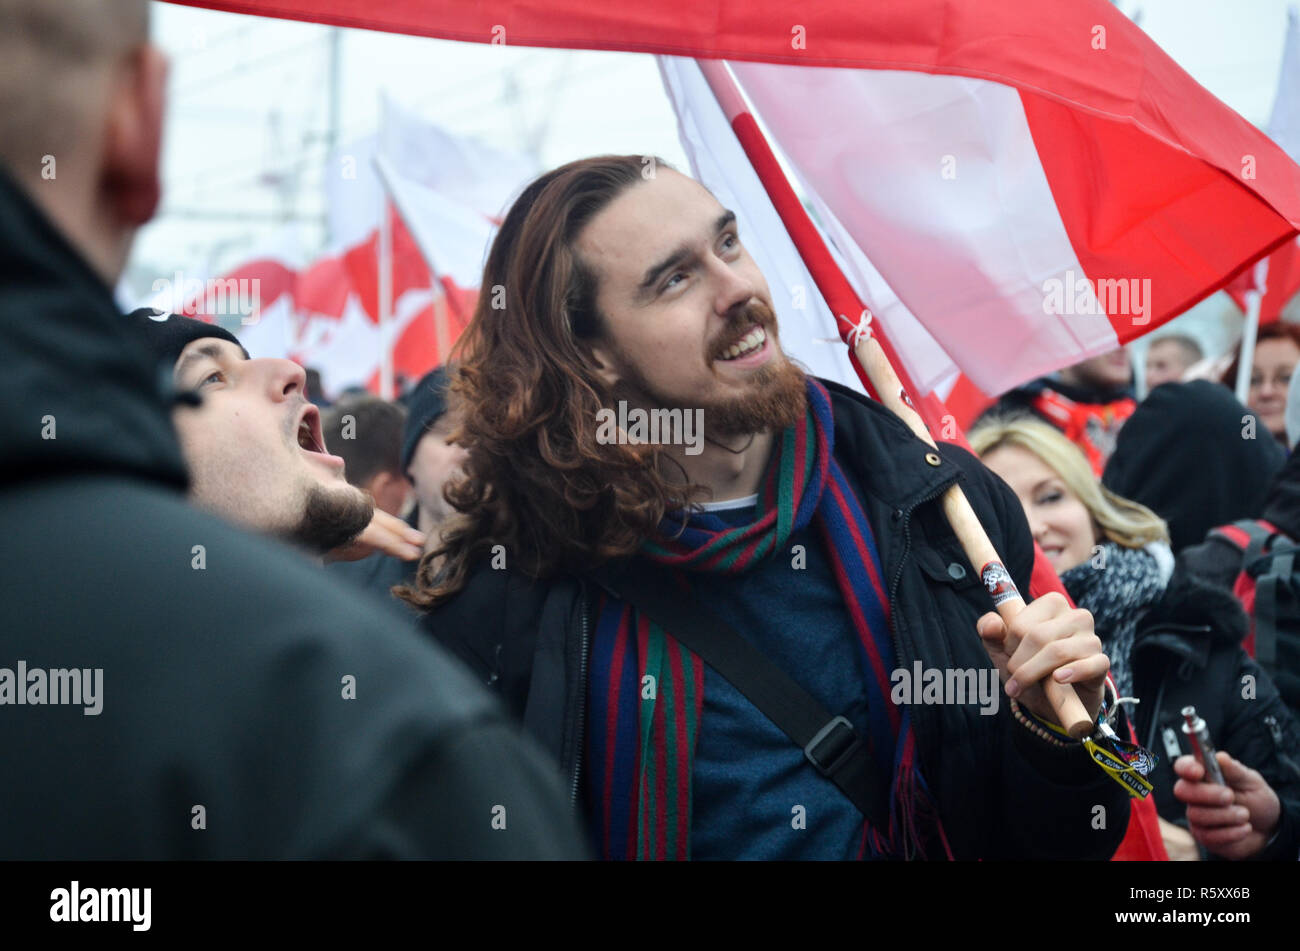 A man holds the Polish flag and smiles, Polish National Independence Day march, 100 year anniversary, Warsaw, 11 November, Poland, 2018 - Stock Image